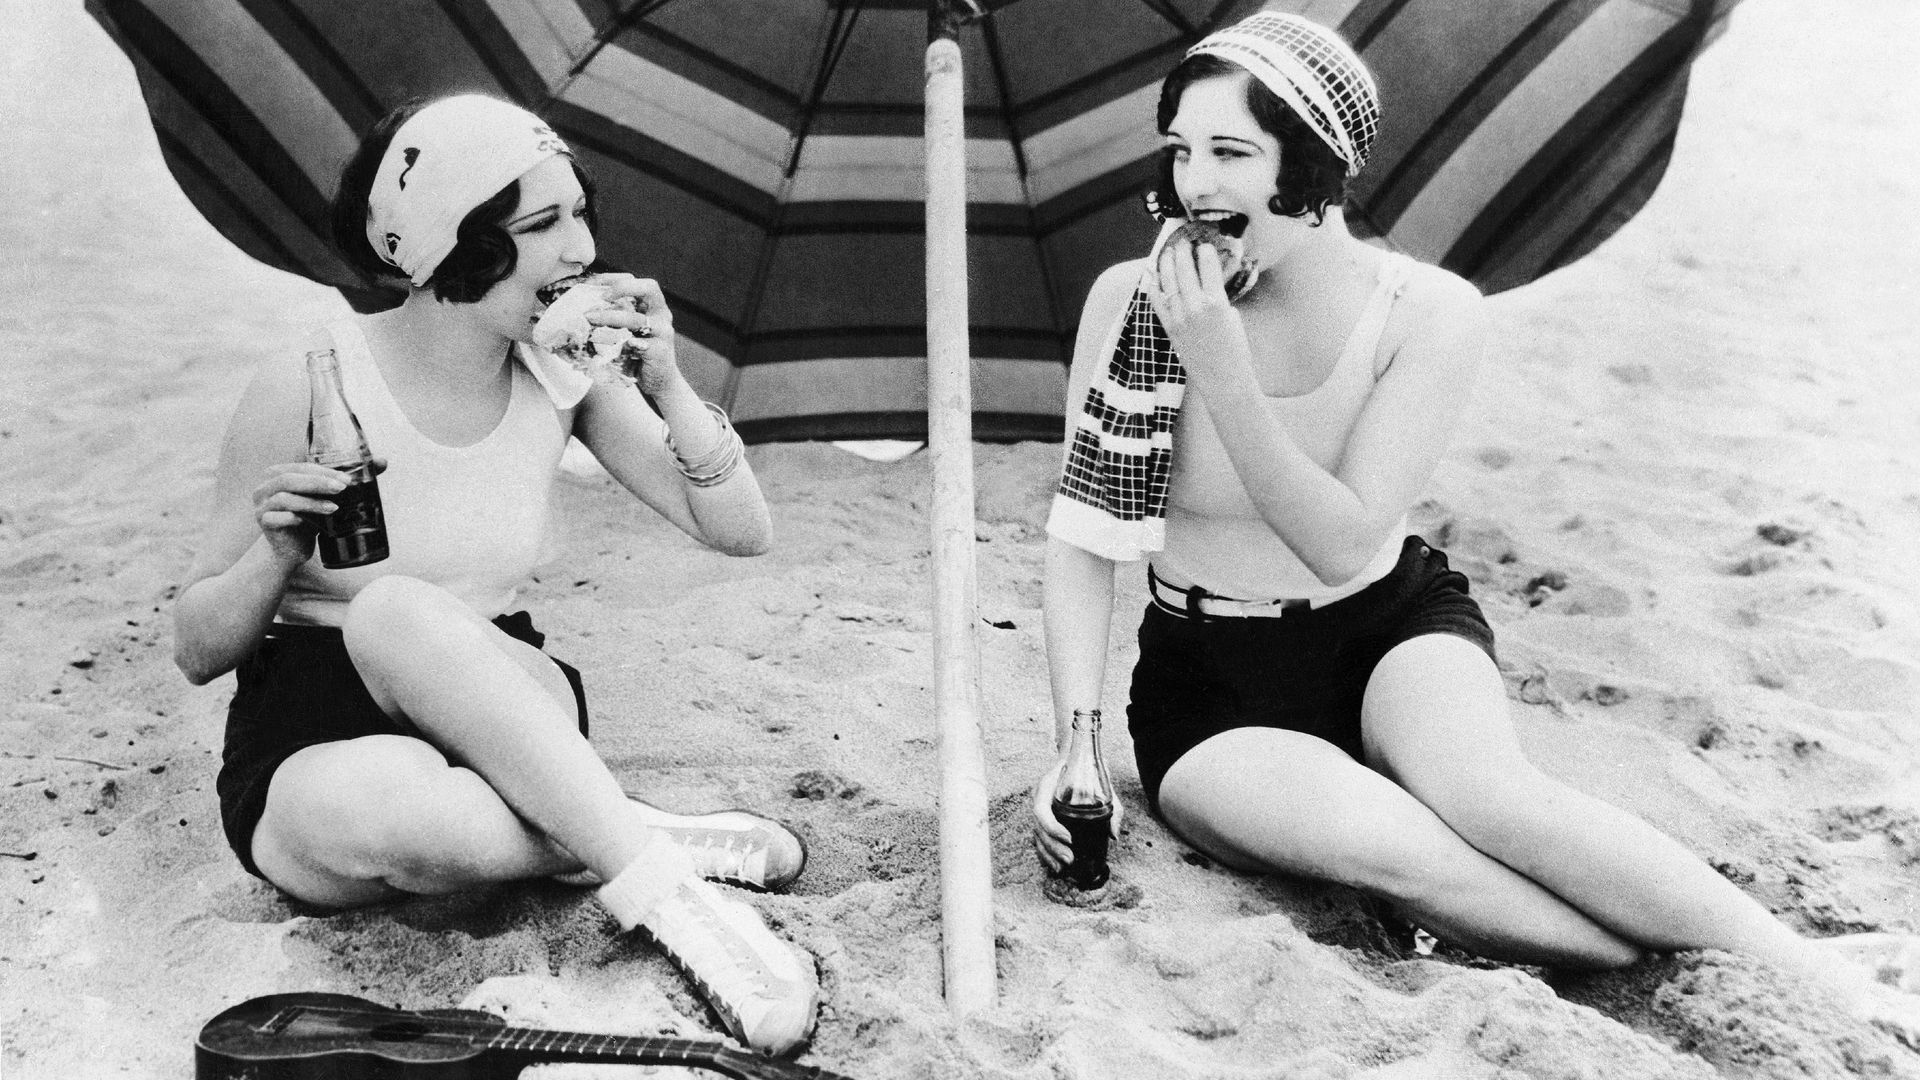 In 1925, two actresses eating burgers on the beach